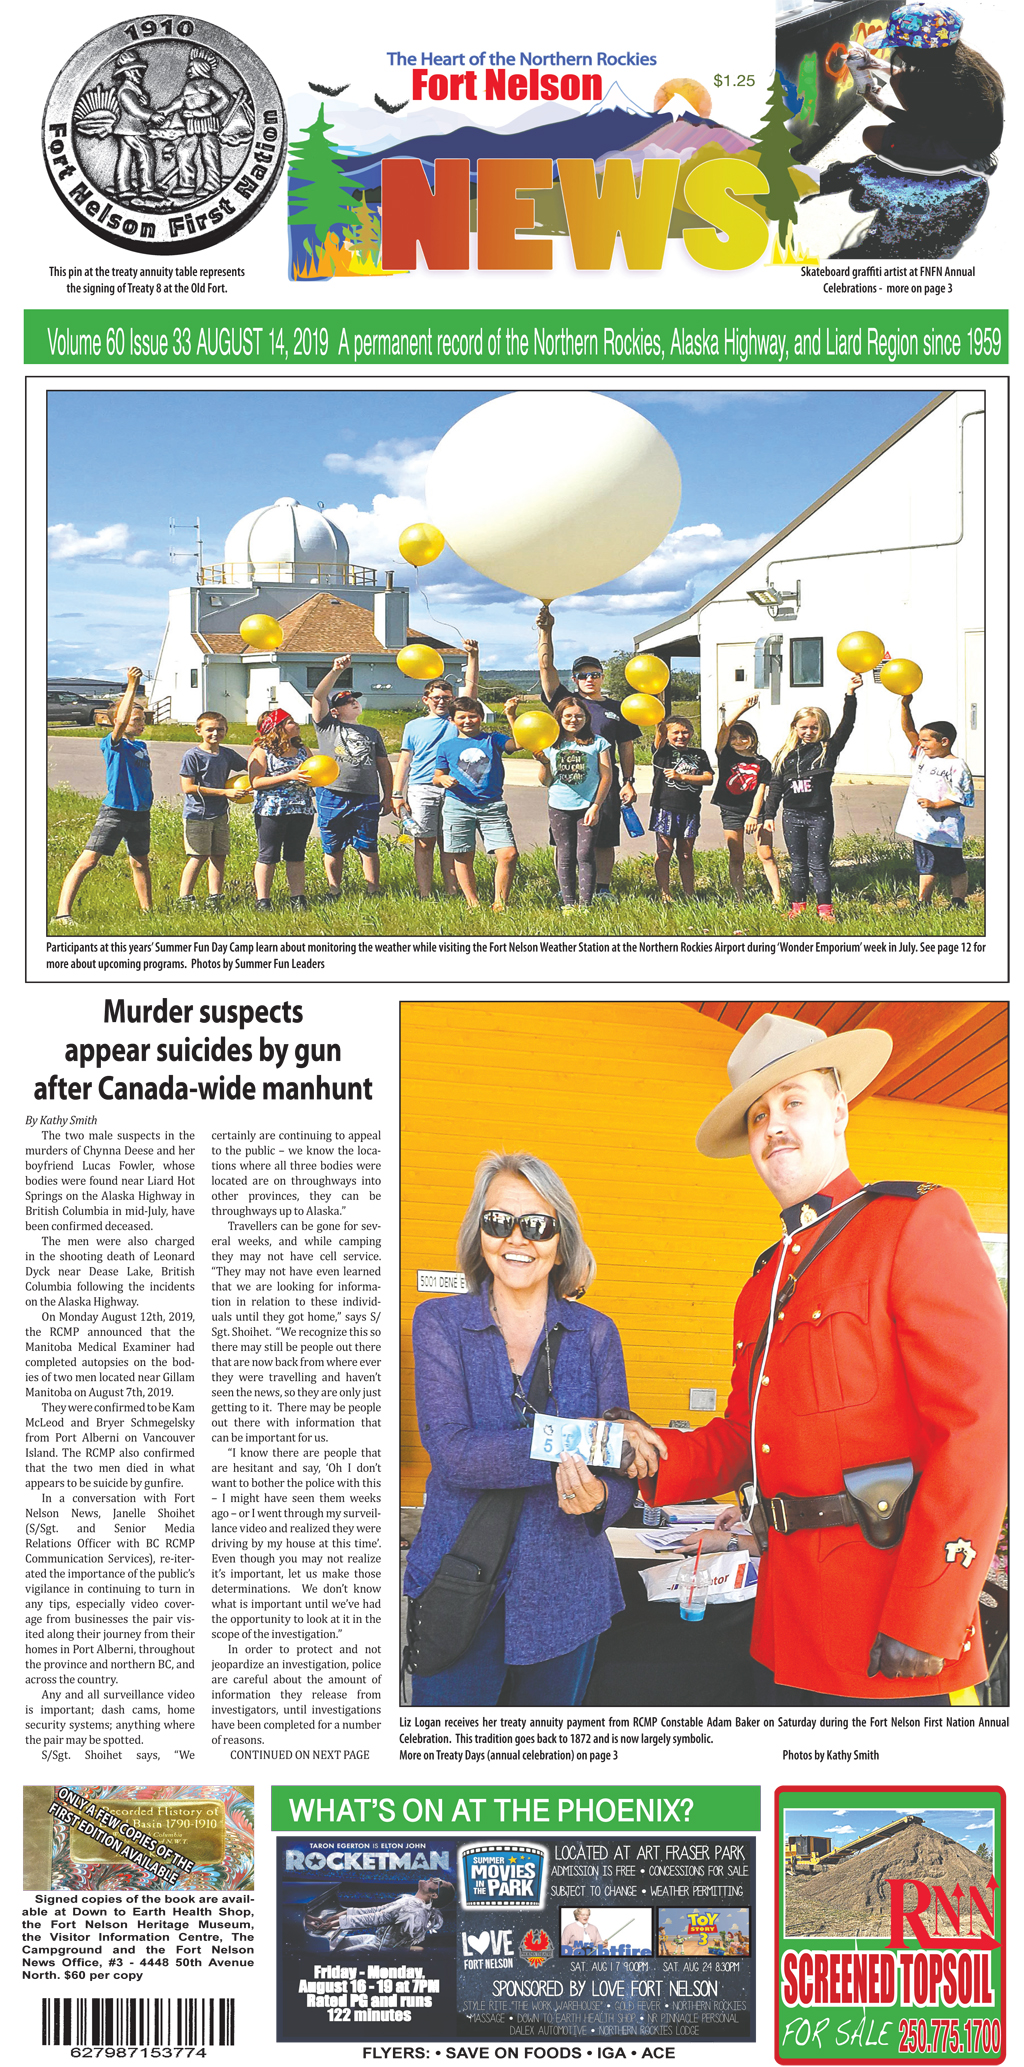 August 14, 2019 - Issue 33 Volume 60 - Fort Nelson News